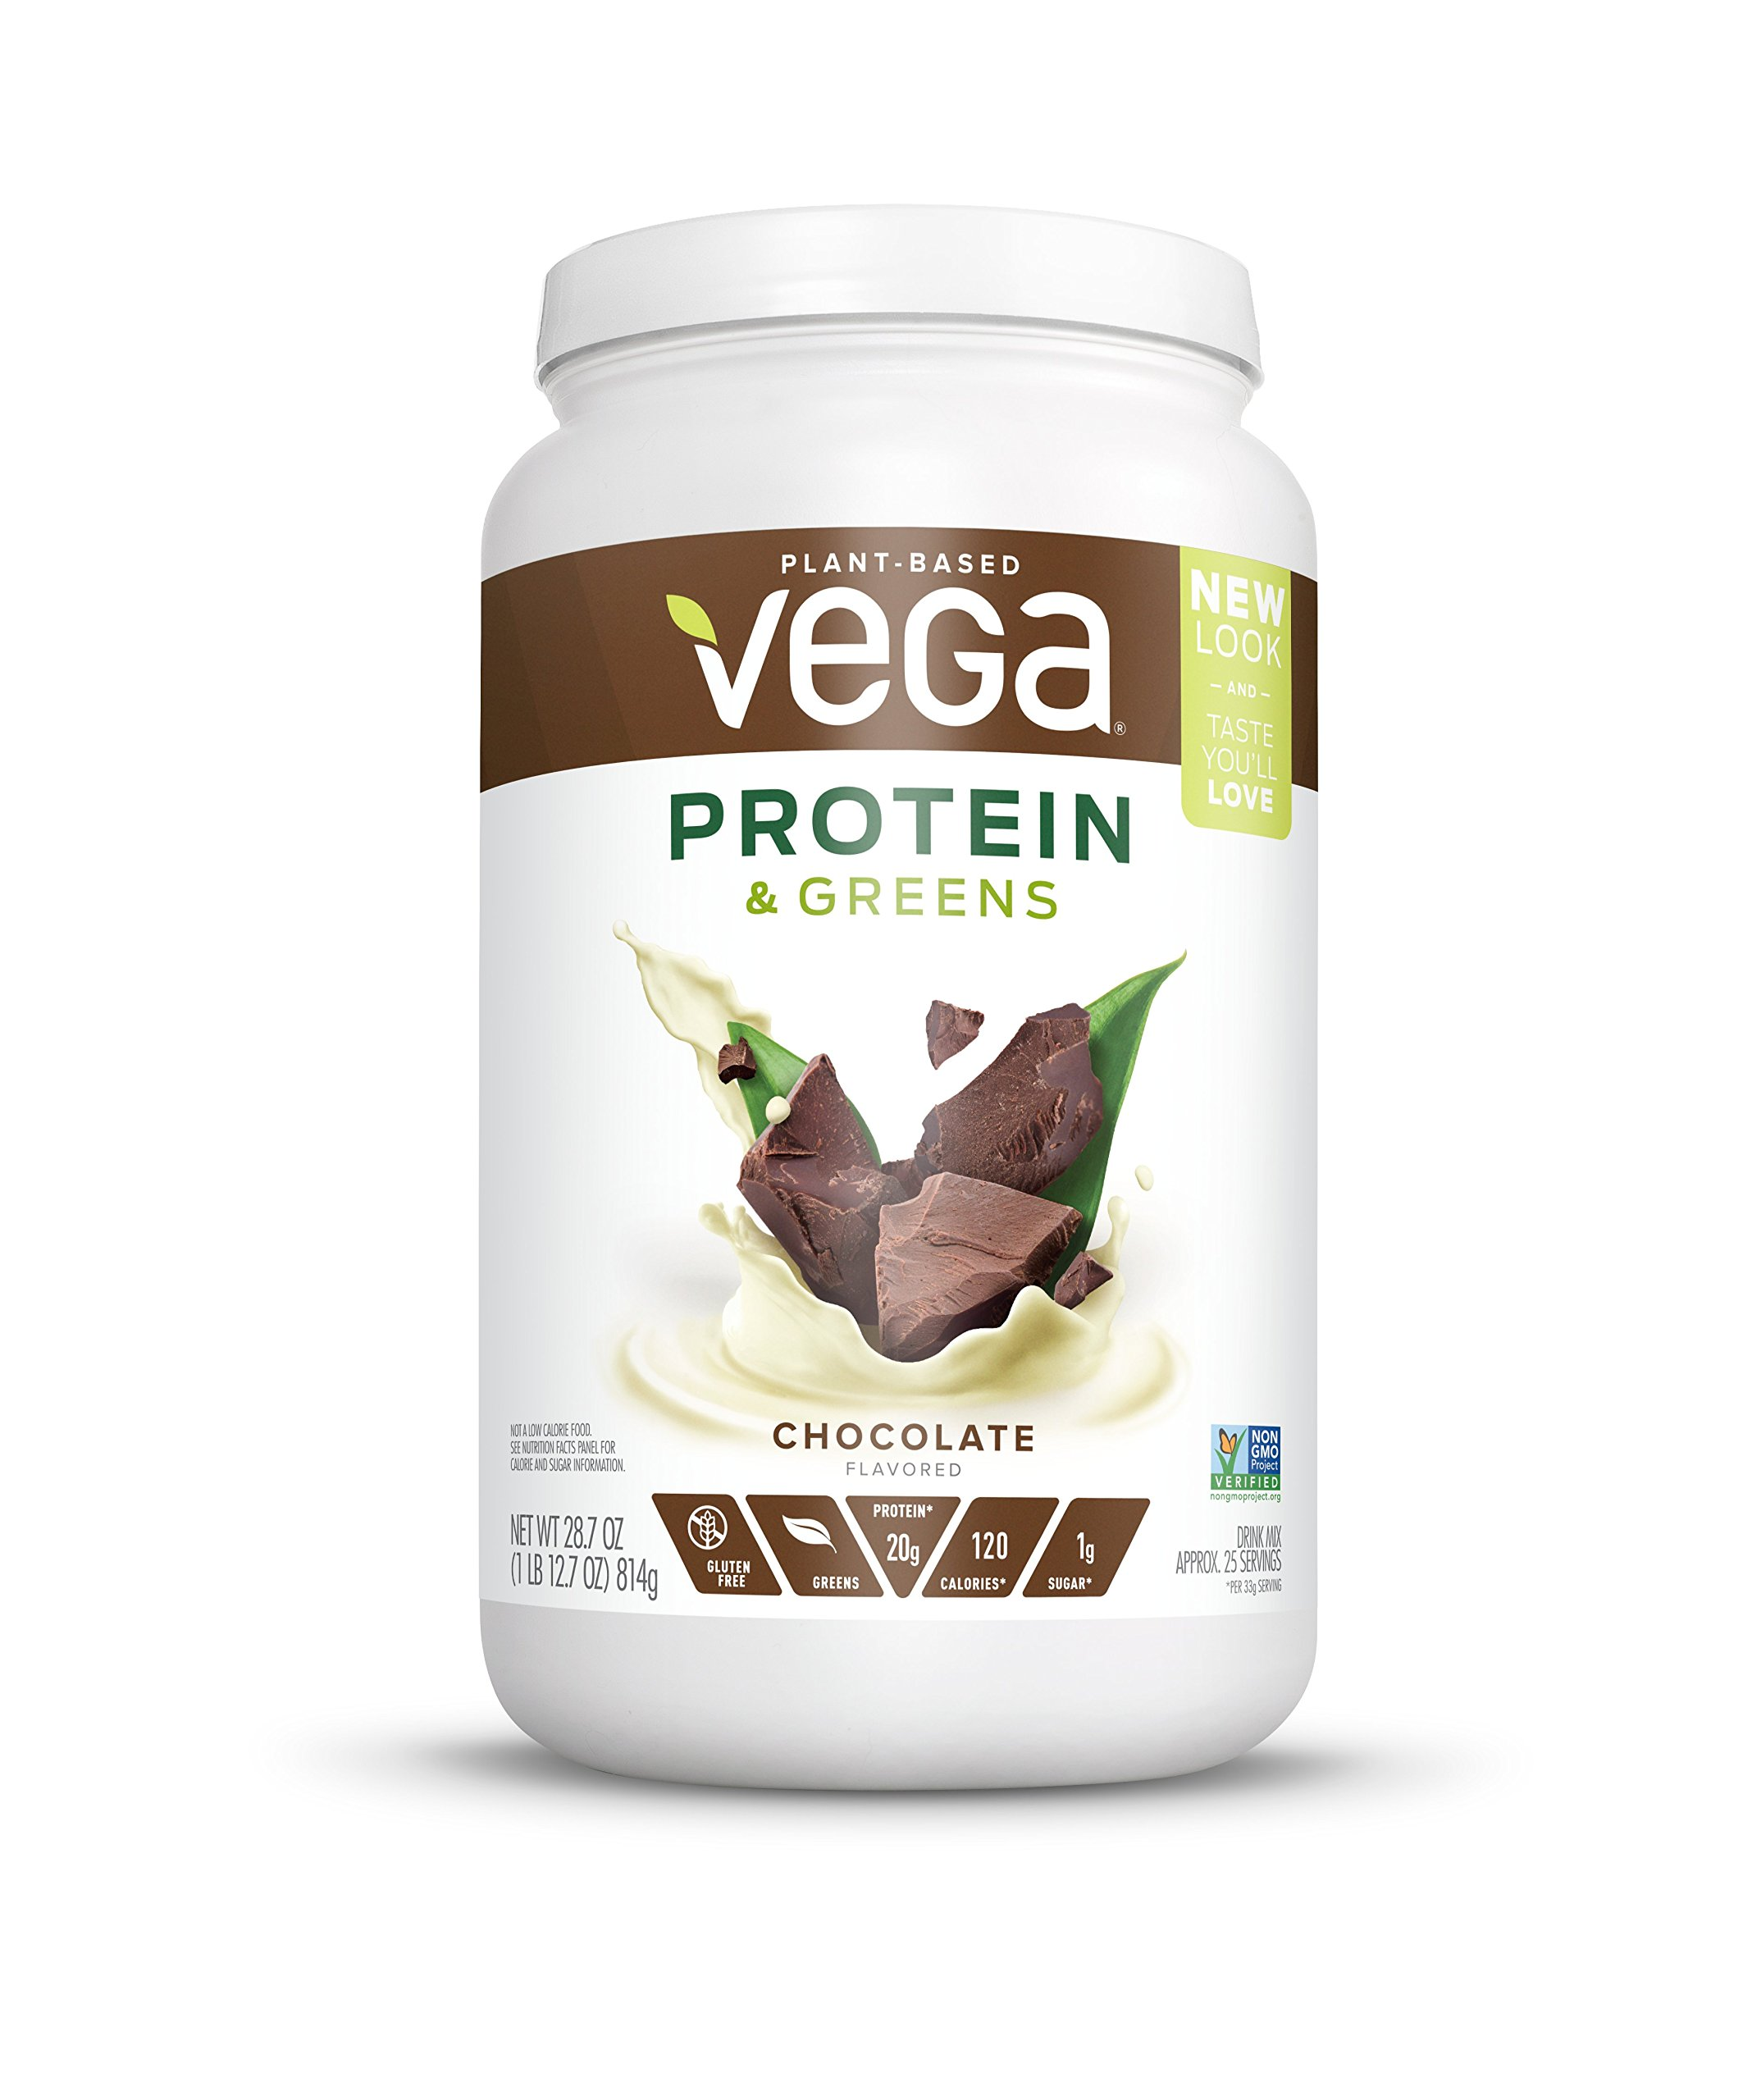 Vega Protein & Greens Chocolate (25 Servings, 28.7 Ounce) - Plant Based Protein Powder, Keto-Friendly, Gluten Free,  Non Dairy, Vegan, Non Soy, Non GMO, Lactose Free by VEGA